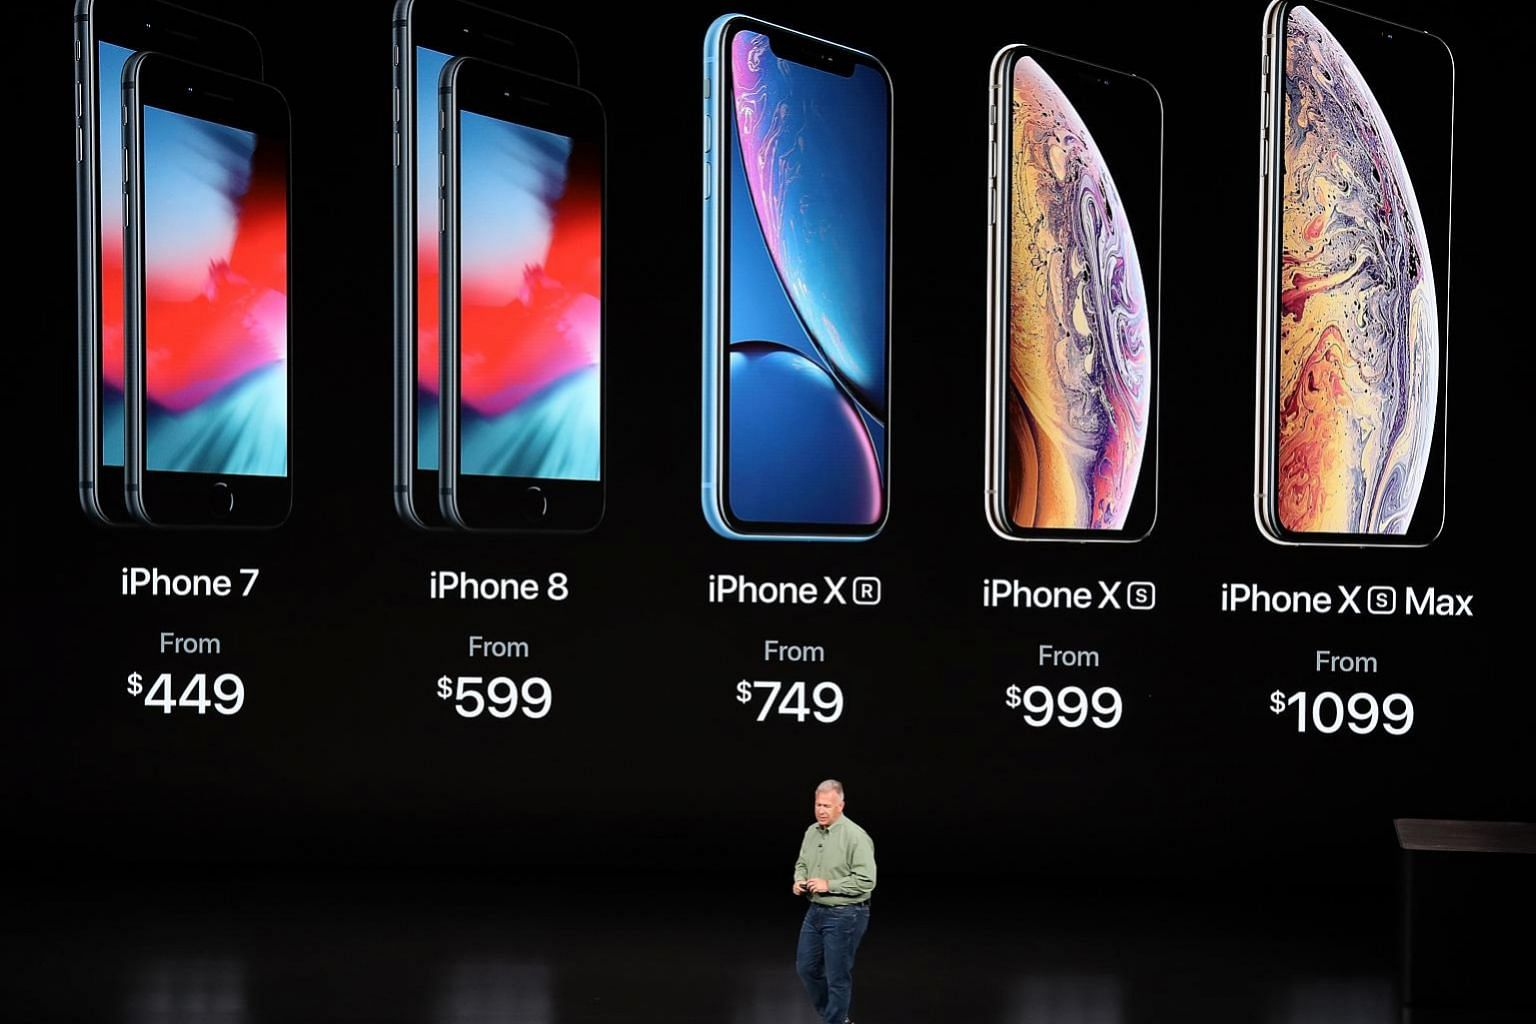 Apple's marketing head Phil Schiller introducing the new iPhone line-up during an event at the Steve Jobs Theatre in Apple Park, California, on Wednesday. All the new iPhones have a front-facing TrueDepth camera system for Face ID, or face recognitio